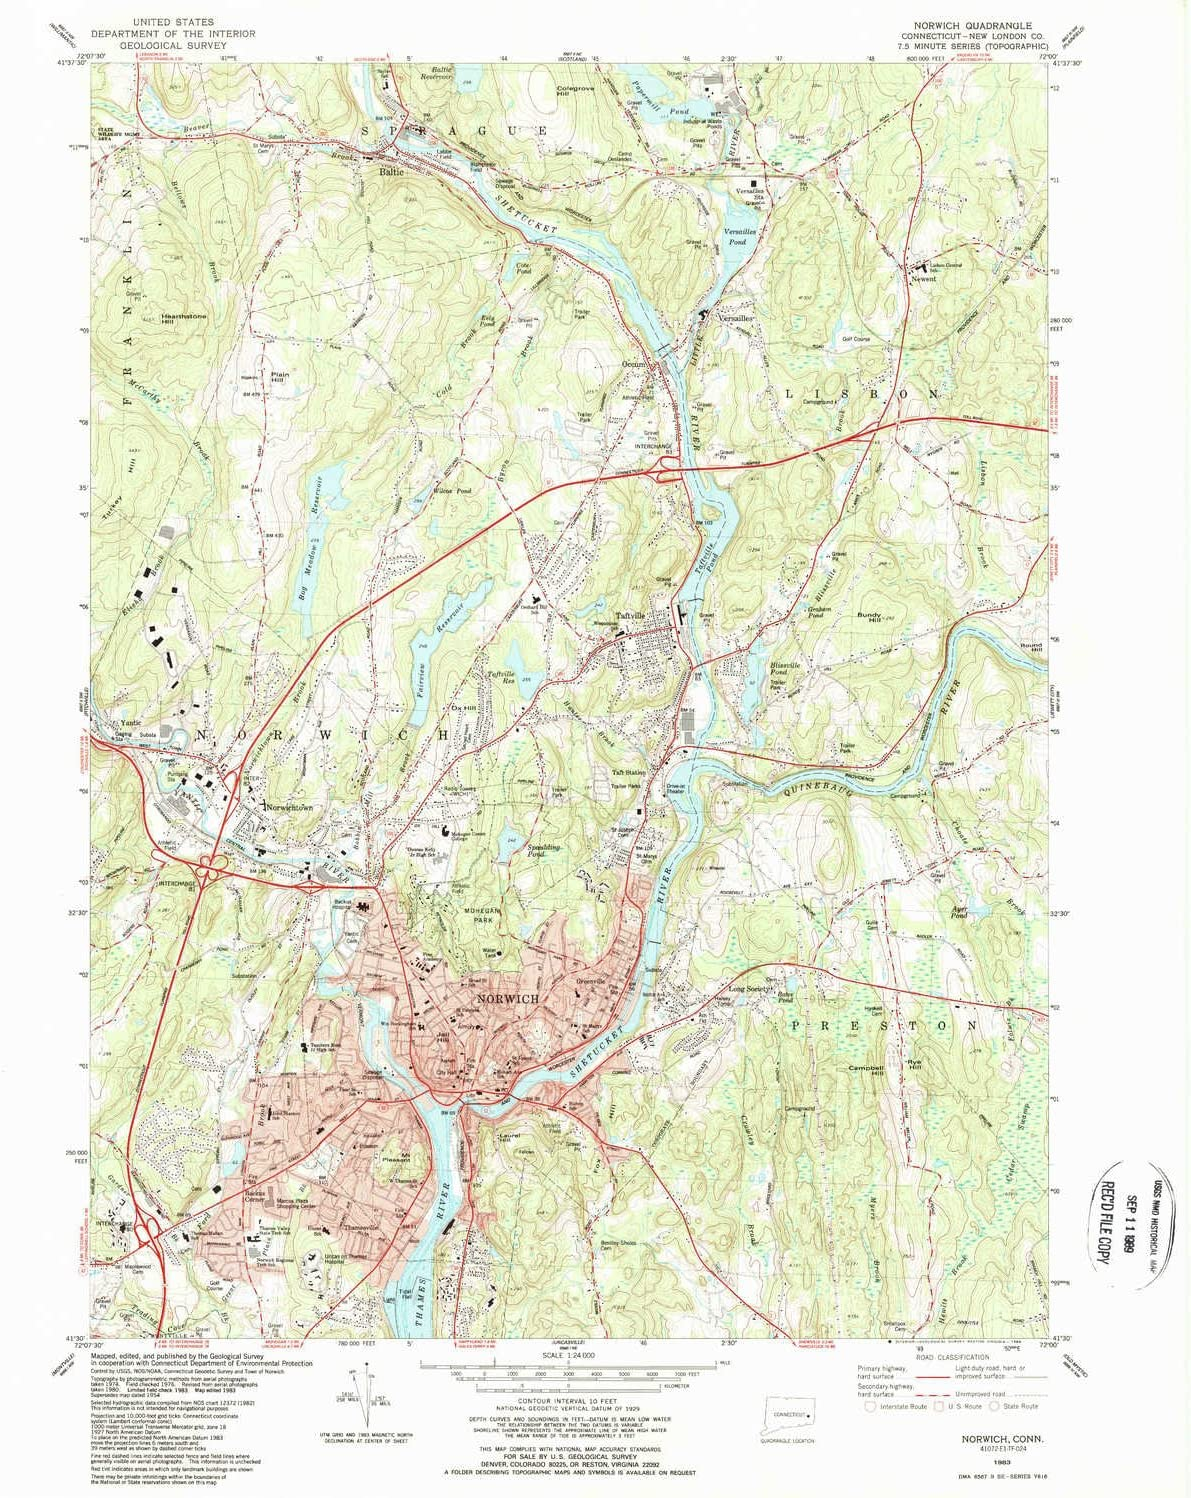 YellowMaps Norwich In stock CT Overseas parallel import regular item topo map X 1:24000 Scale 7.5 Minute